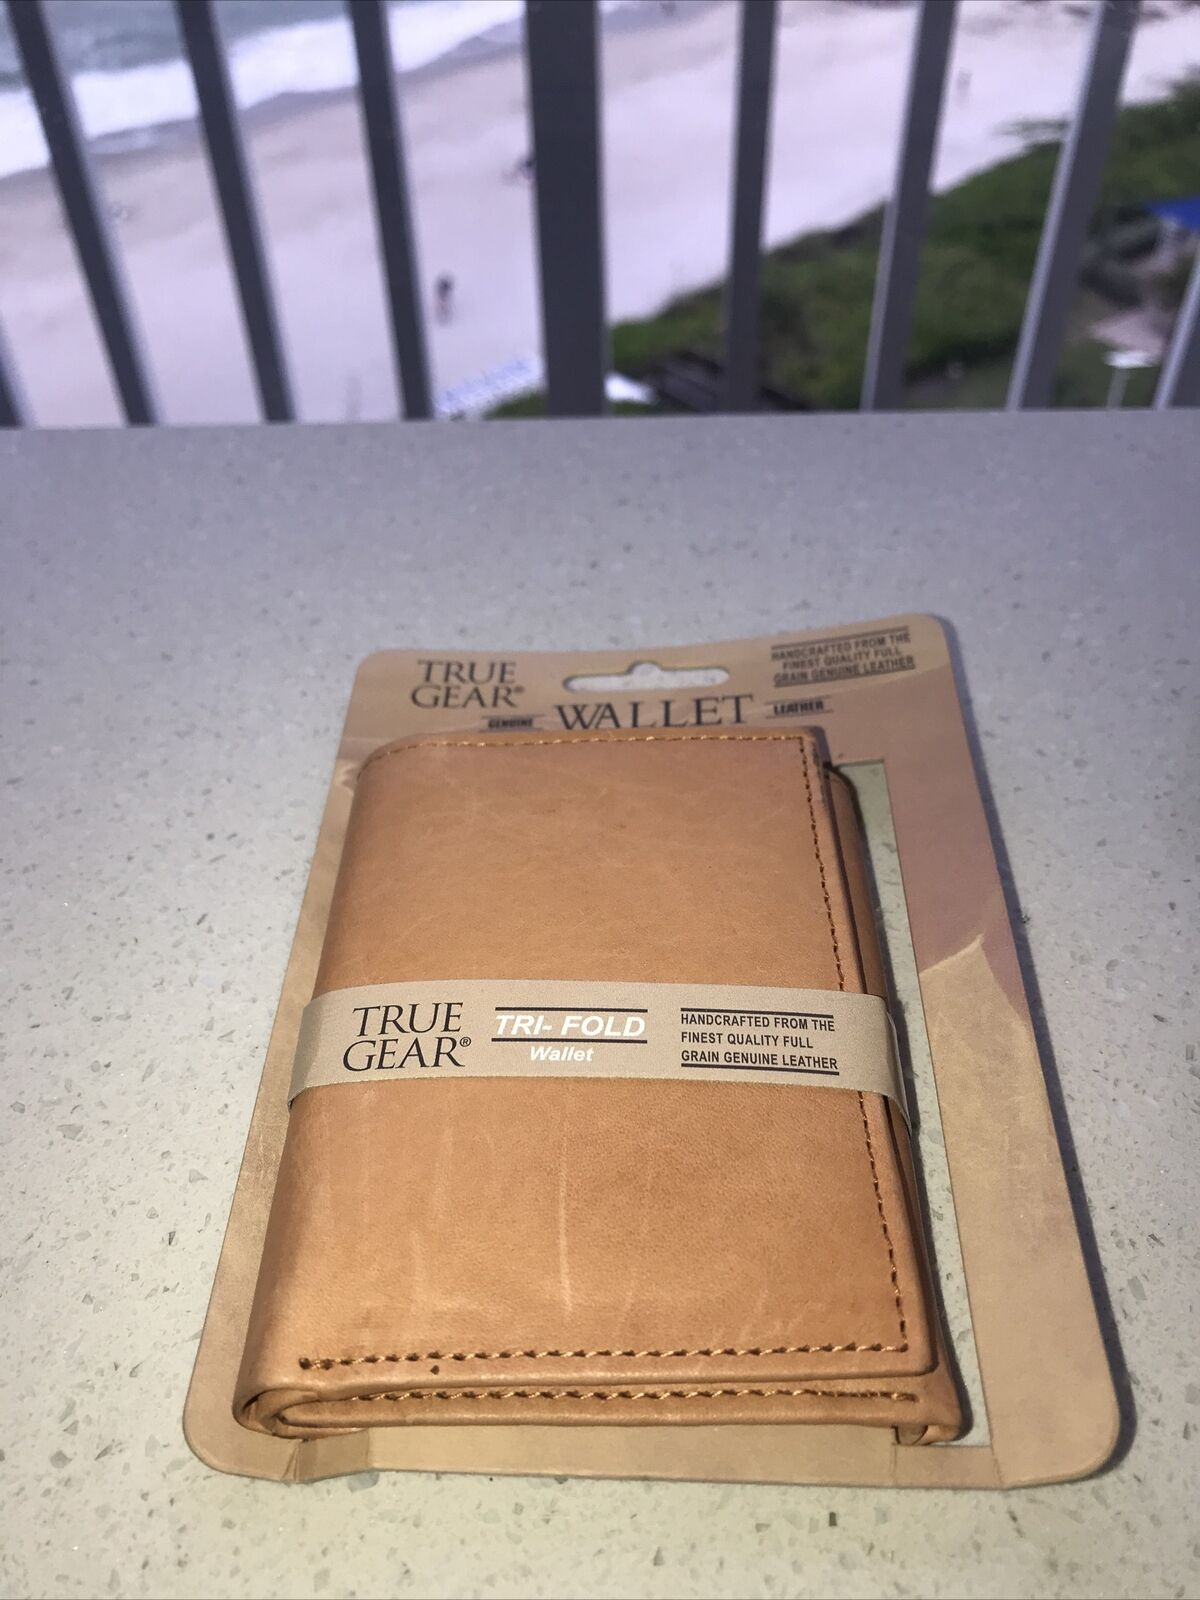 TRUE GEAR GENUINE LEATHER WALLET (New with Box) Light Carmel Color